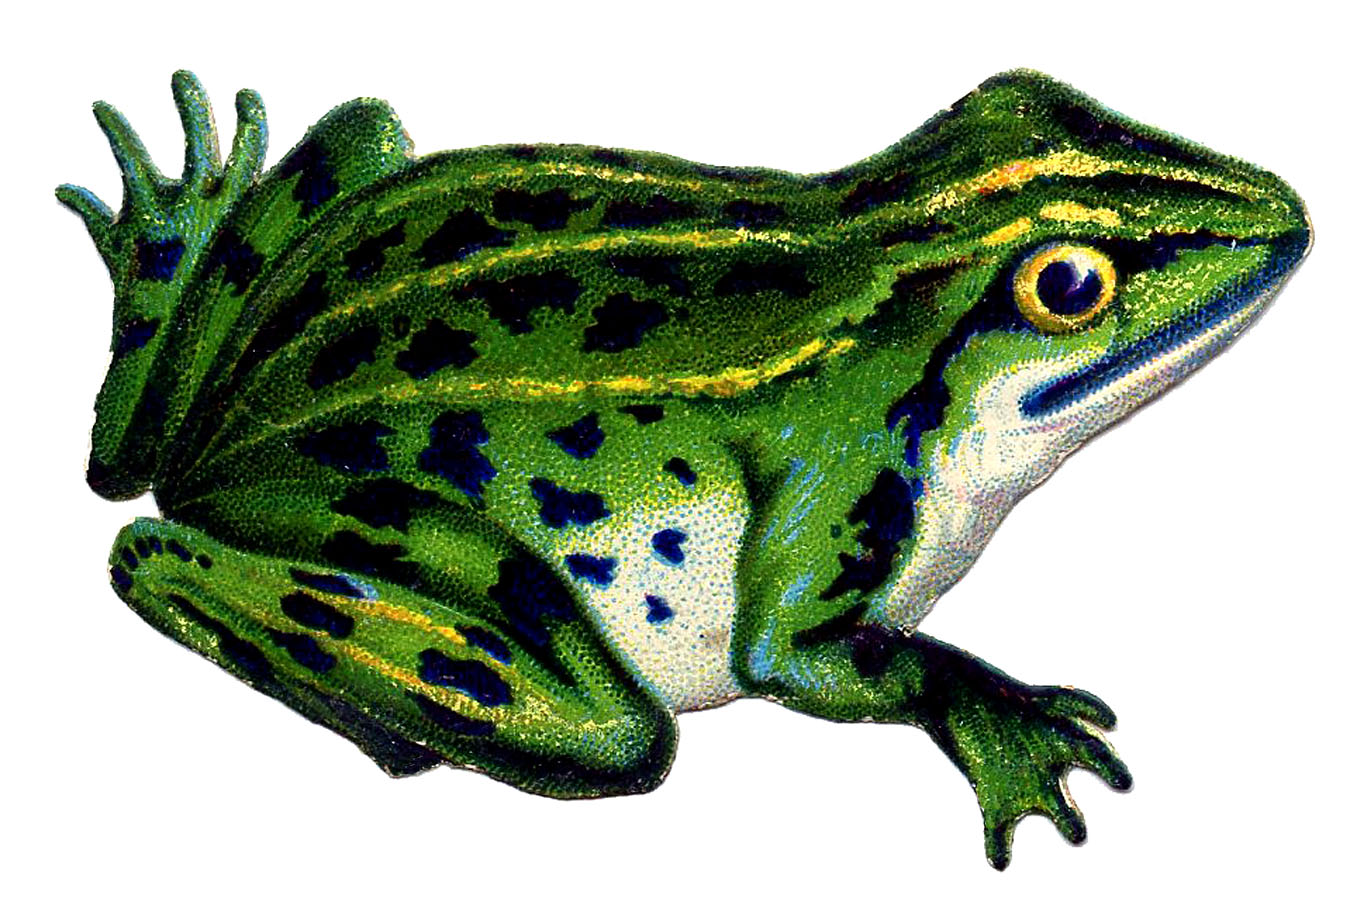 Vintage-Frog-Image-GraphicsFairy3 - The Graphics Fairy